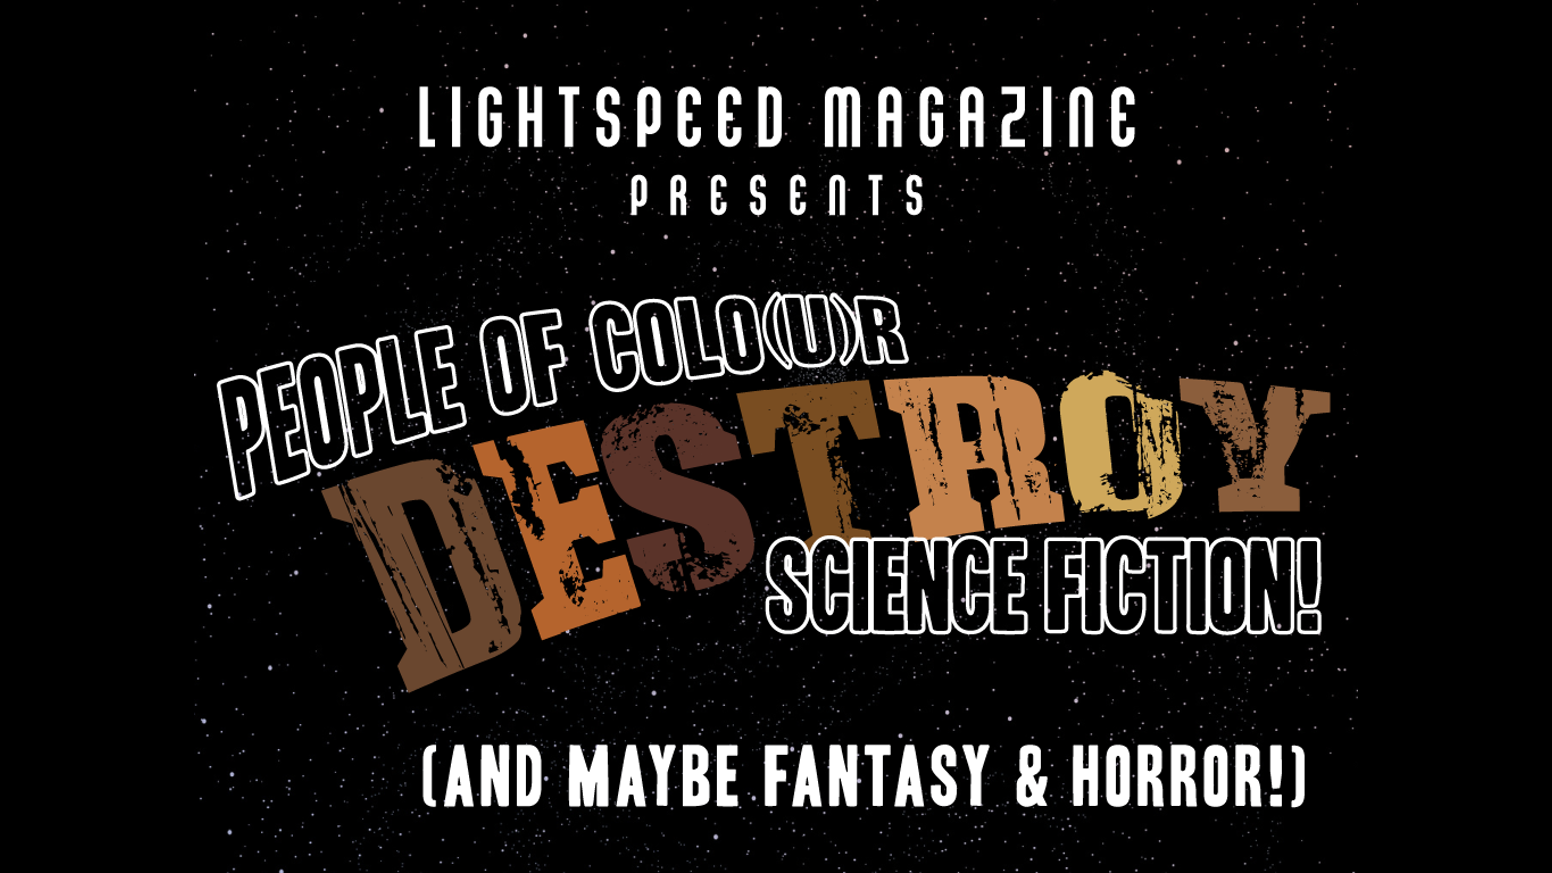 people of colo u r destroy science fiction by lightspeed magazine people of colo u r destroy science fiction by lightspeed magazine kickstarter